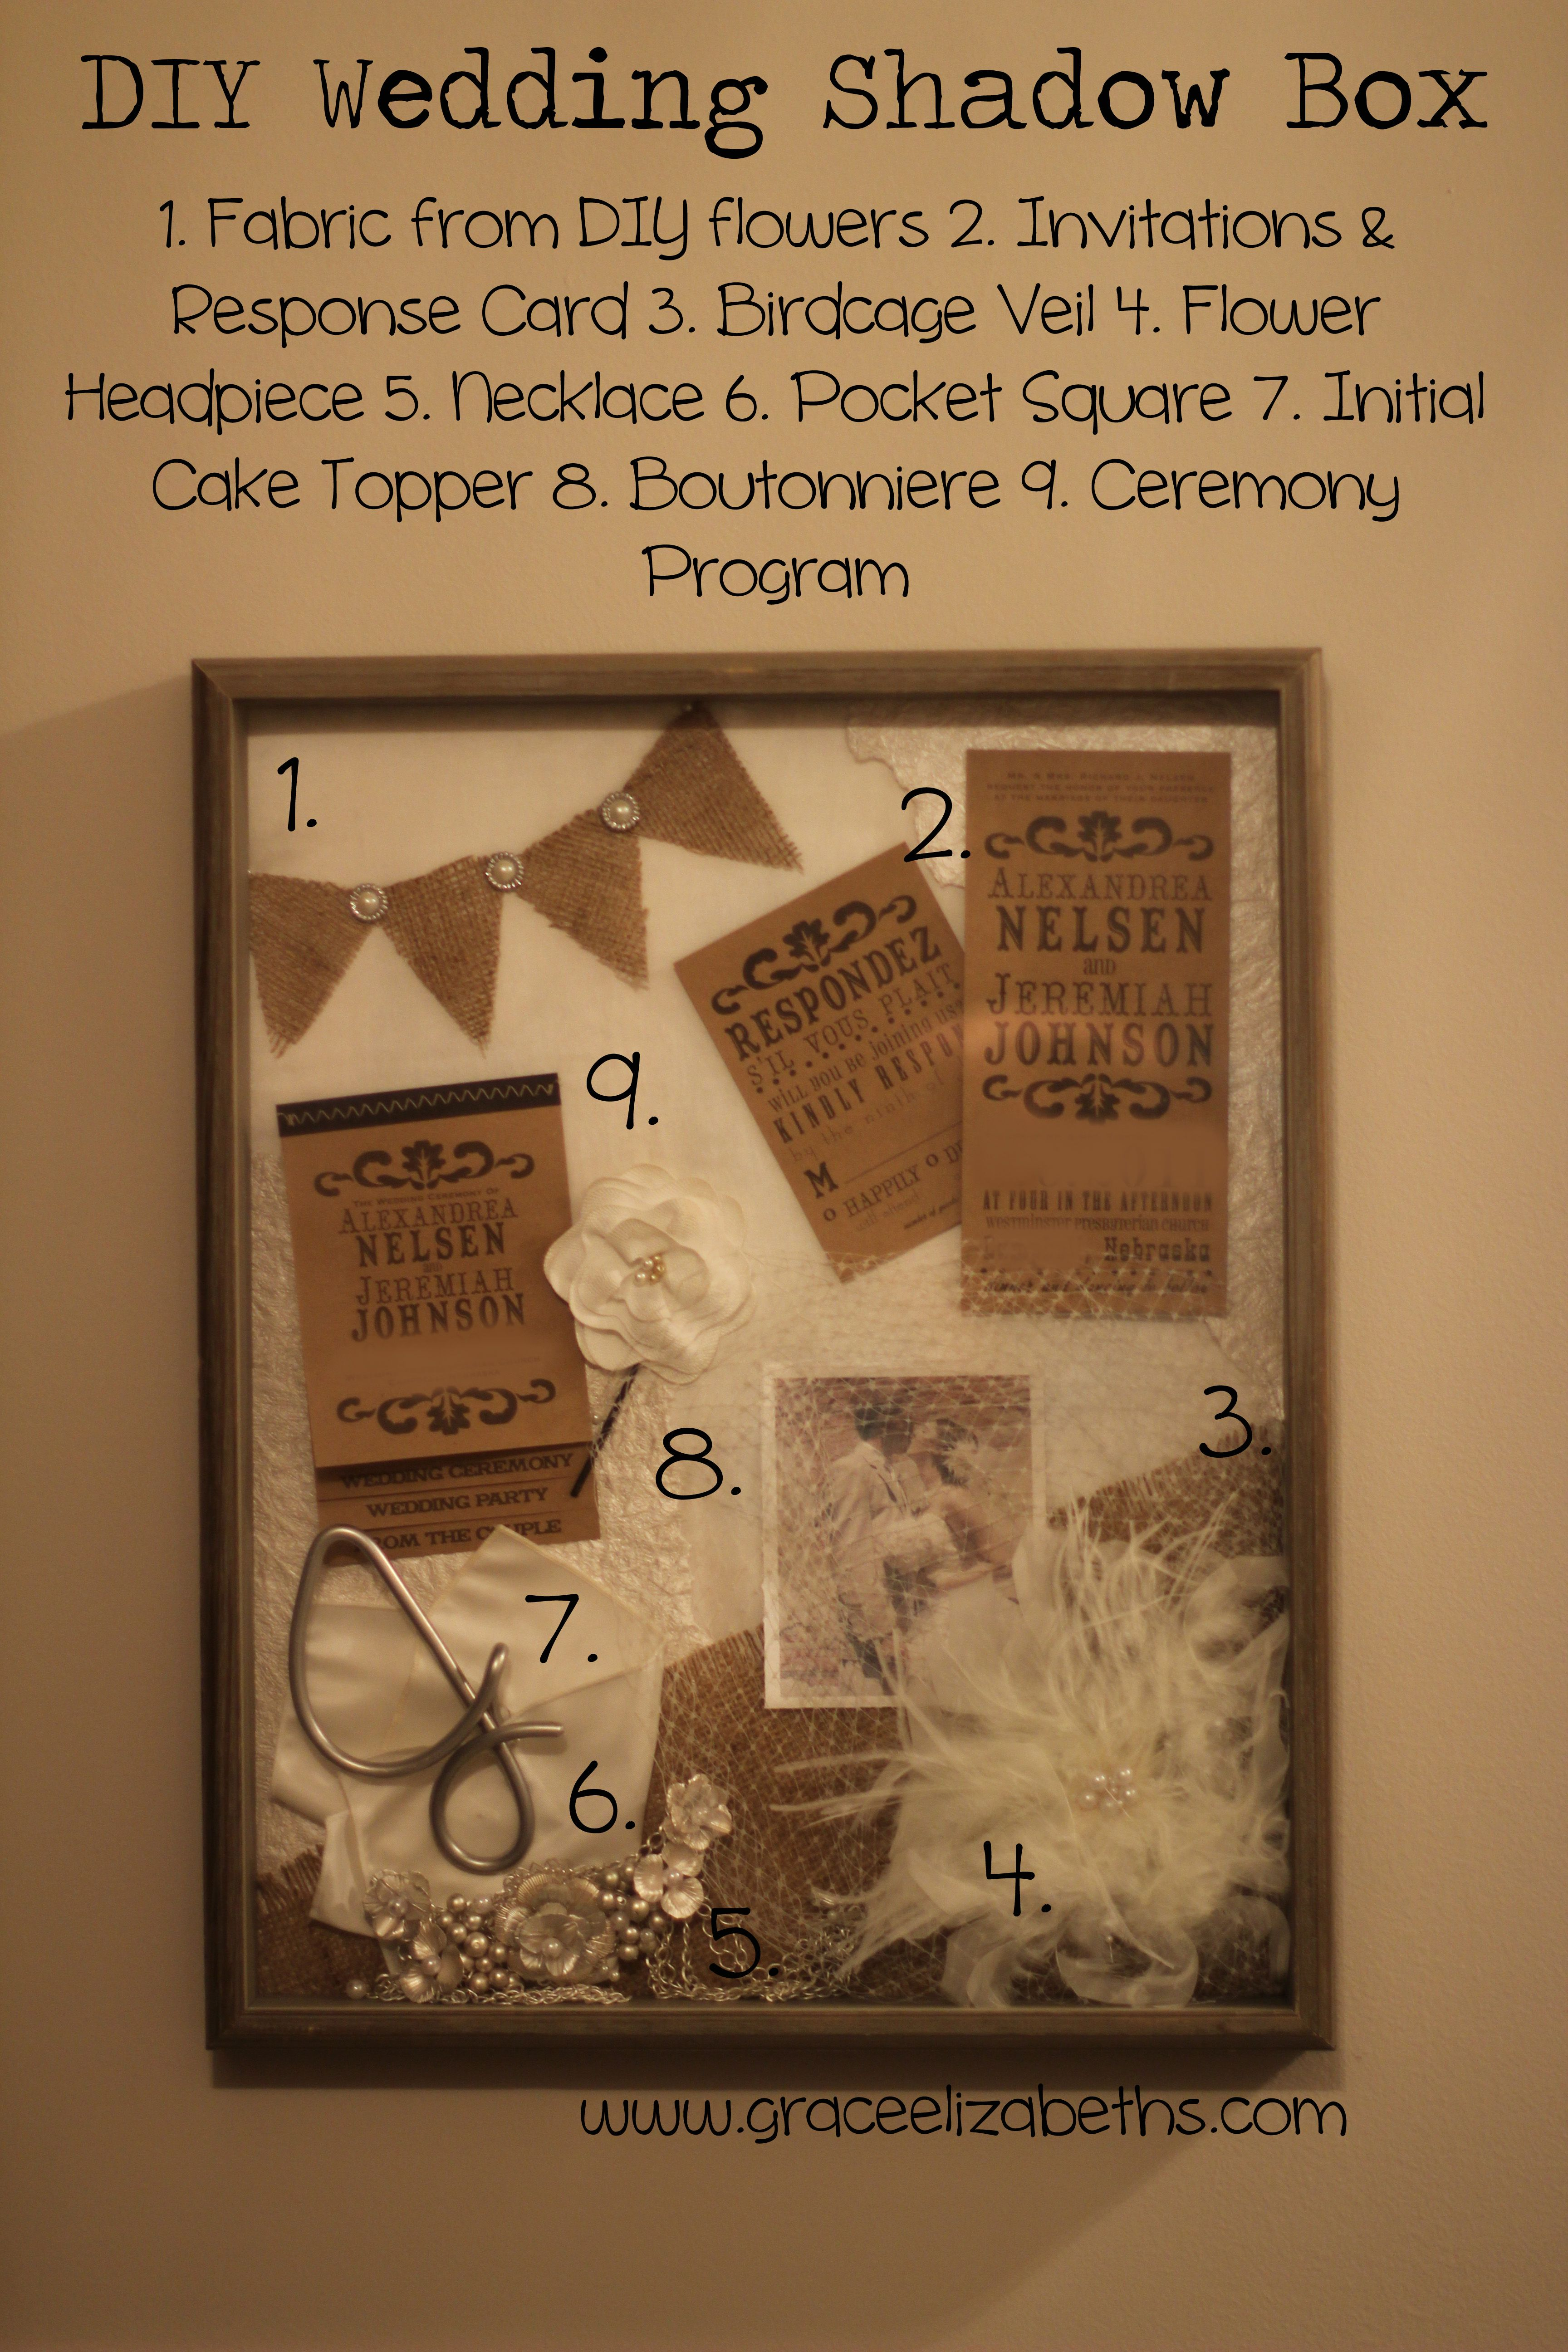 Backgrounds diy wedding shadow box of box ideas pc hd pics get crafty and